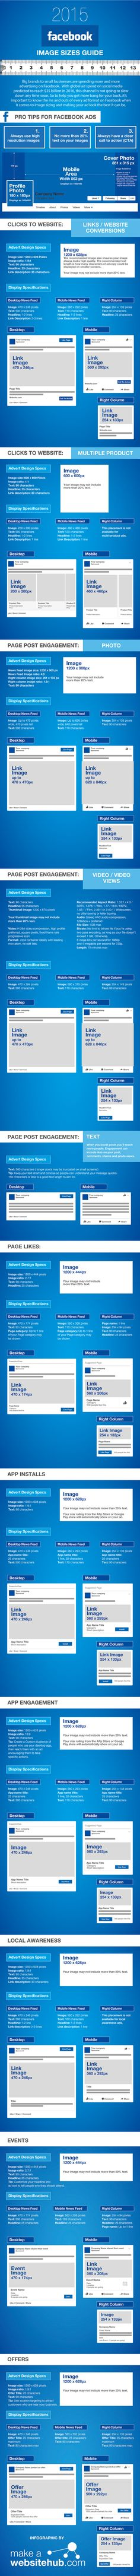 The Ultimate Facebook Image Size Guide [Infographic] | Social Media Today  http://www.socialmediatoday.com/social-networks/irfan-ahmad/2015-07-31/ultimate-facebook-image-size-guide-infographic